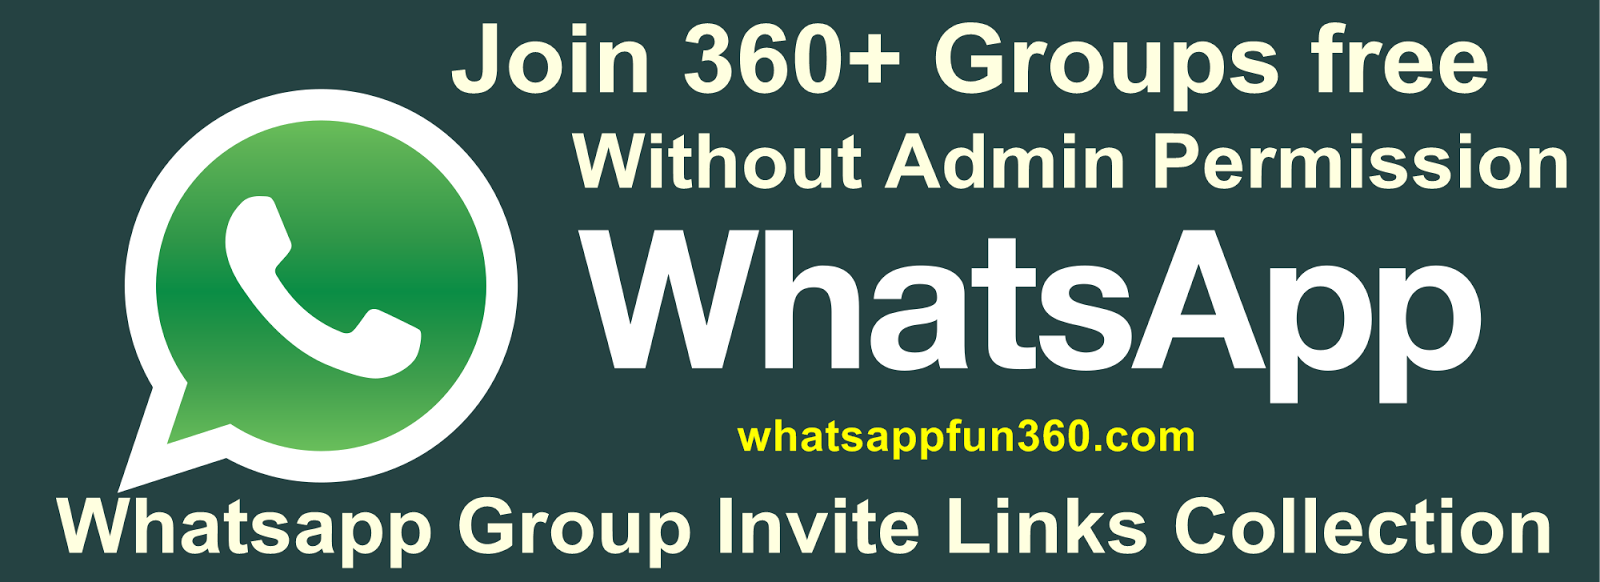 Whatsapp groups invite links collection Join 500 groups Now